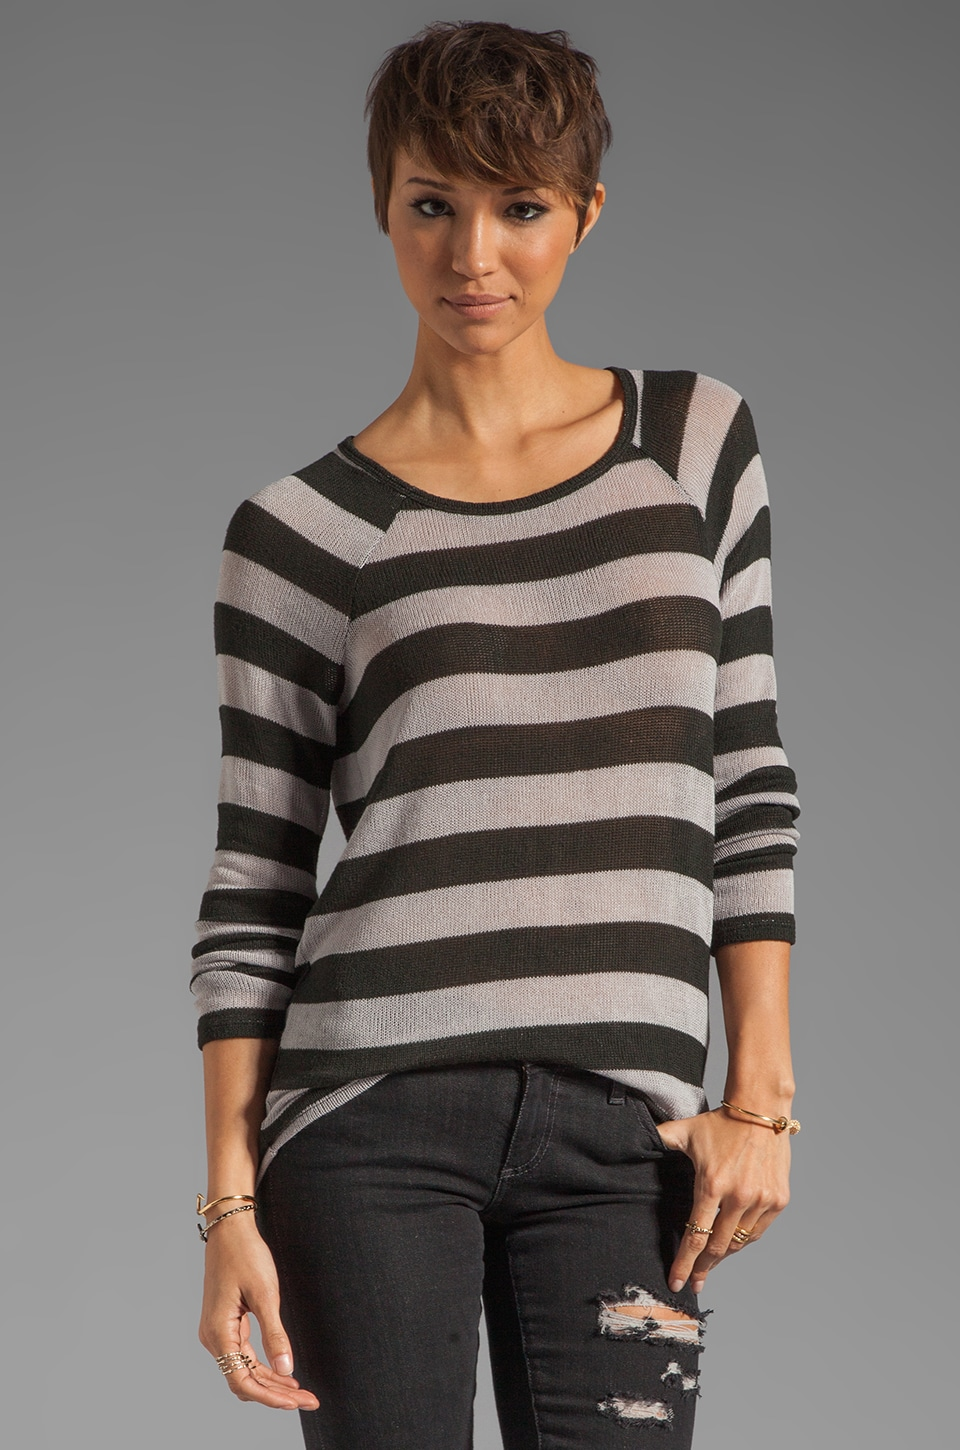 Soft Joie Dalya Stripe Sweater in Charcoal